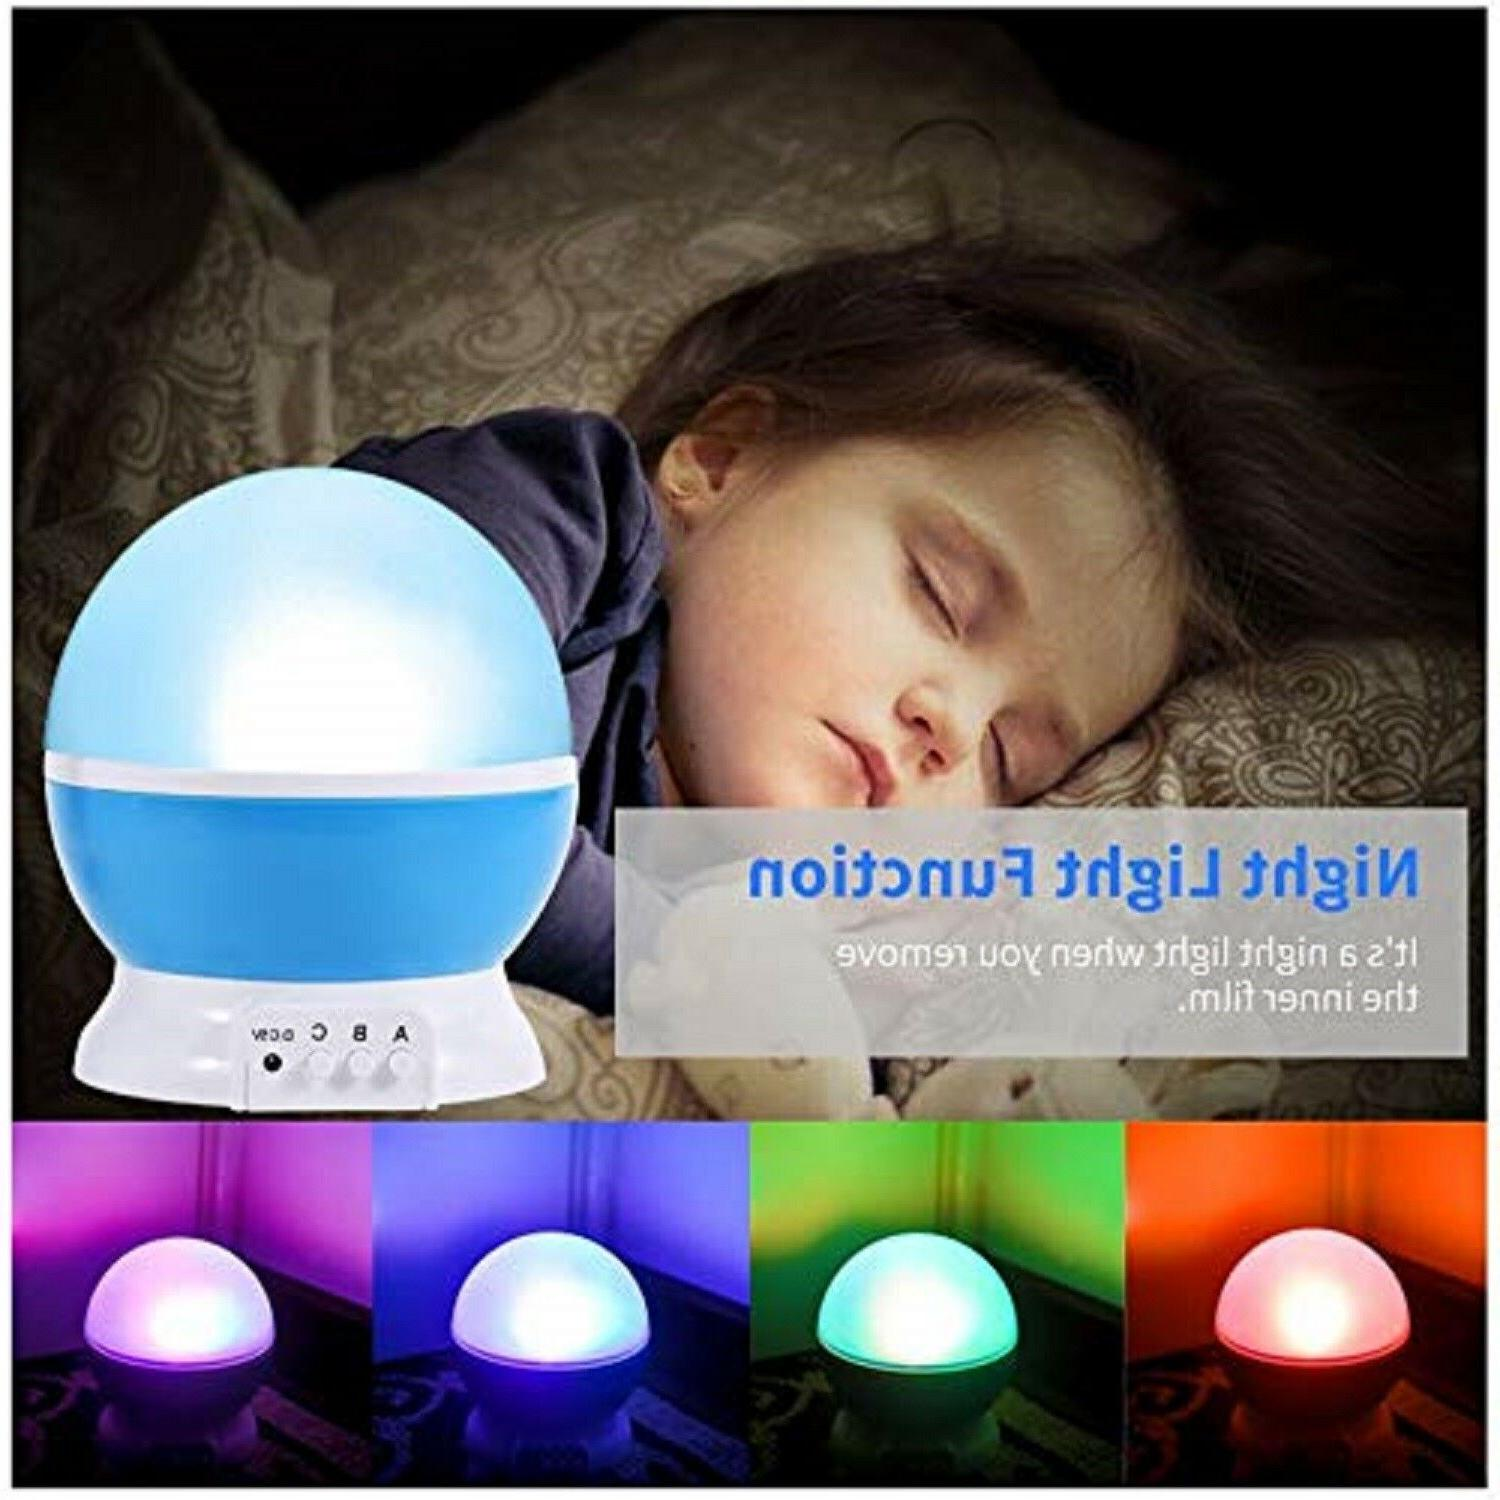 TOYS FOR BOYS 10 Year LED Constellation Xmas Gift